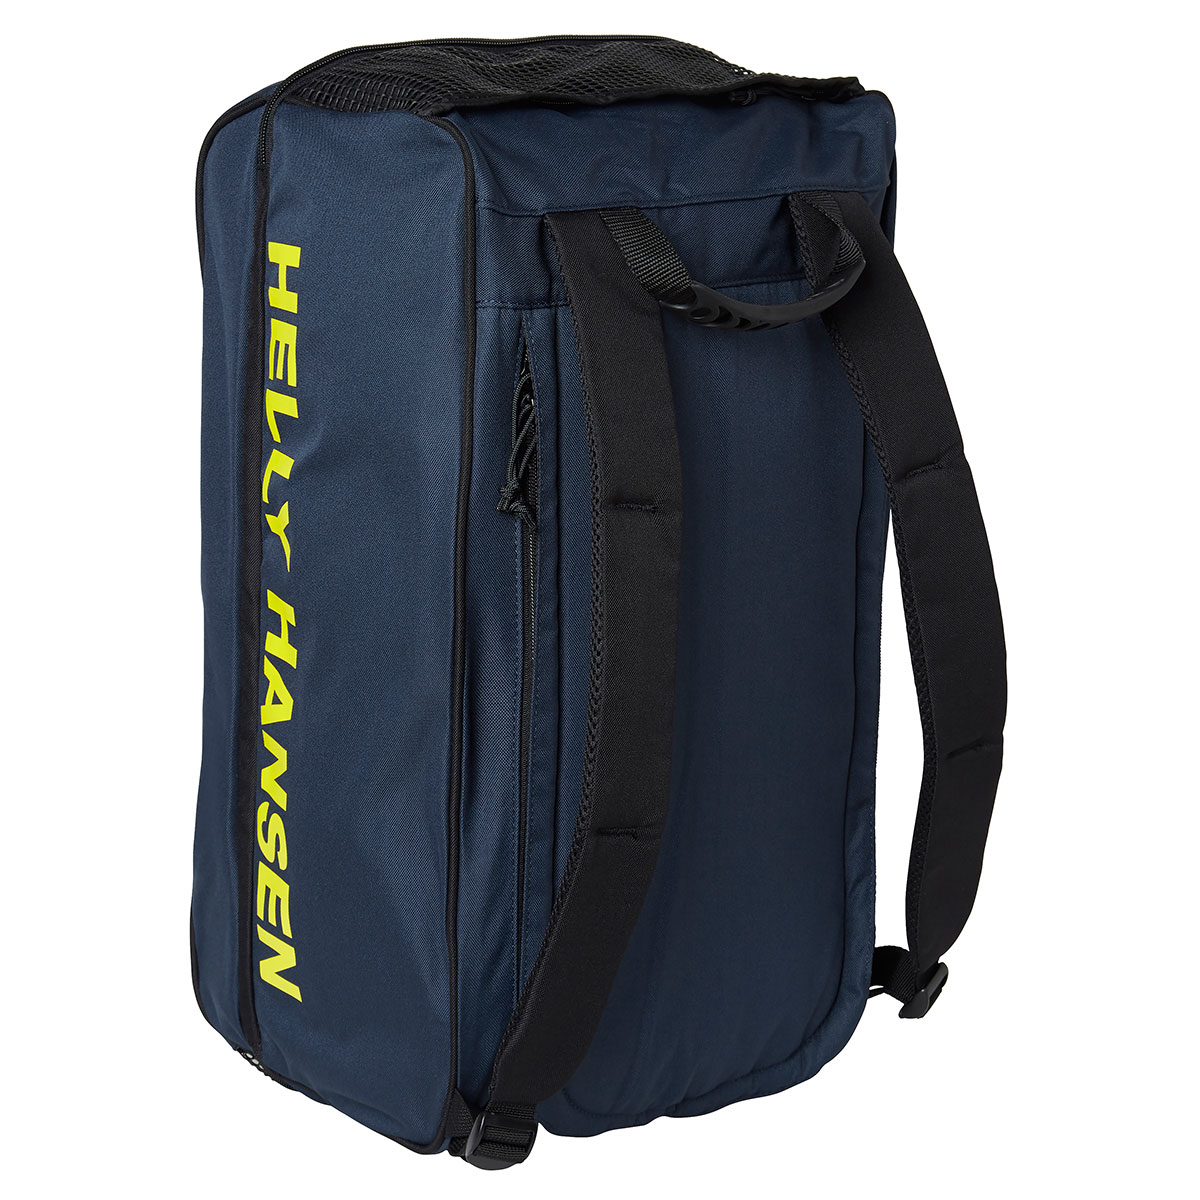 Helly Hansen Homme 2019 HH Racing Imperméable Sac à dos sangles sac 28/% off RRP